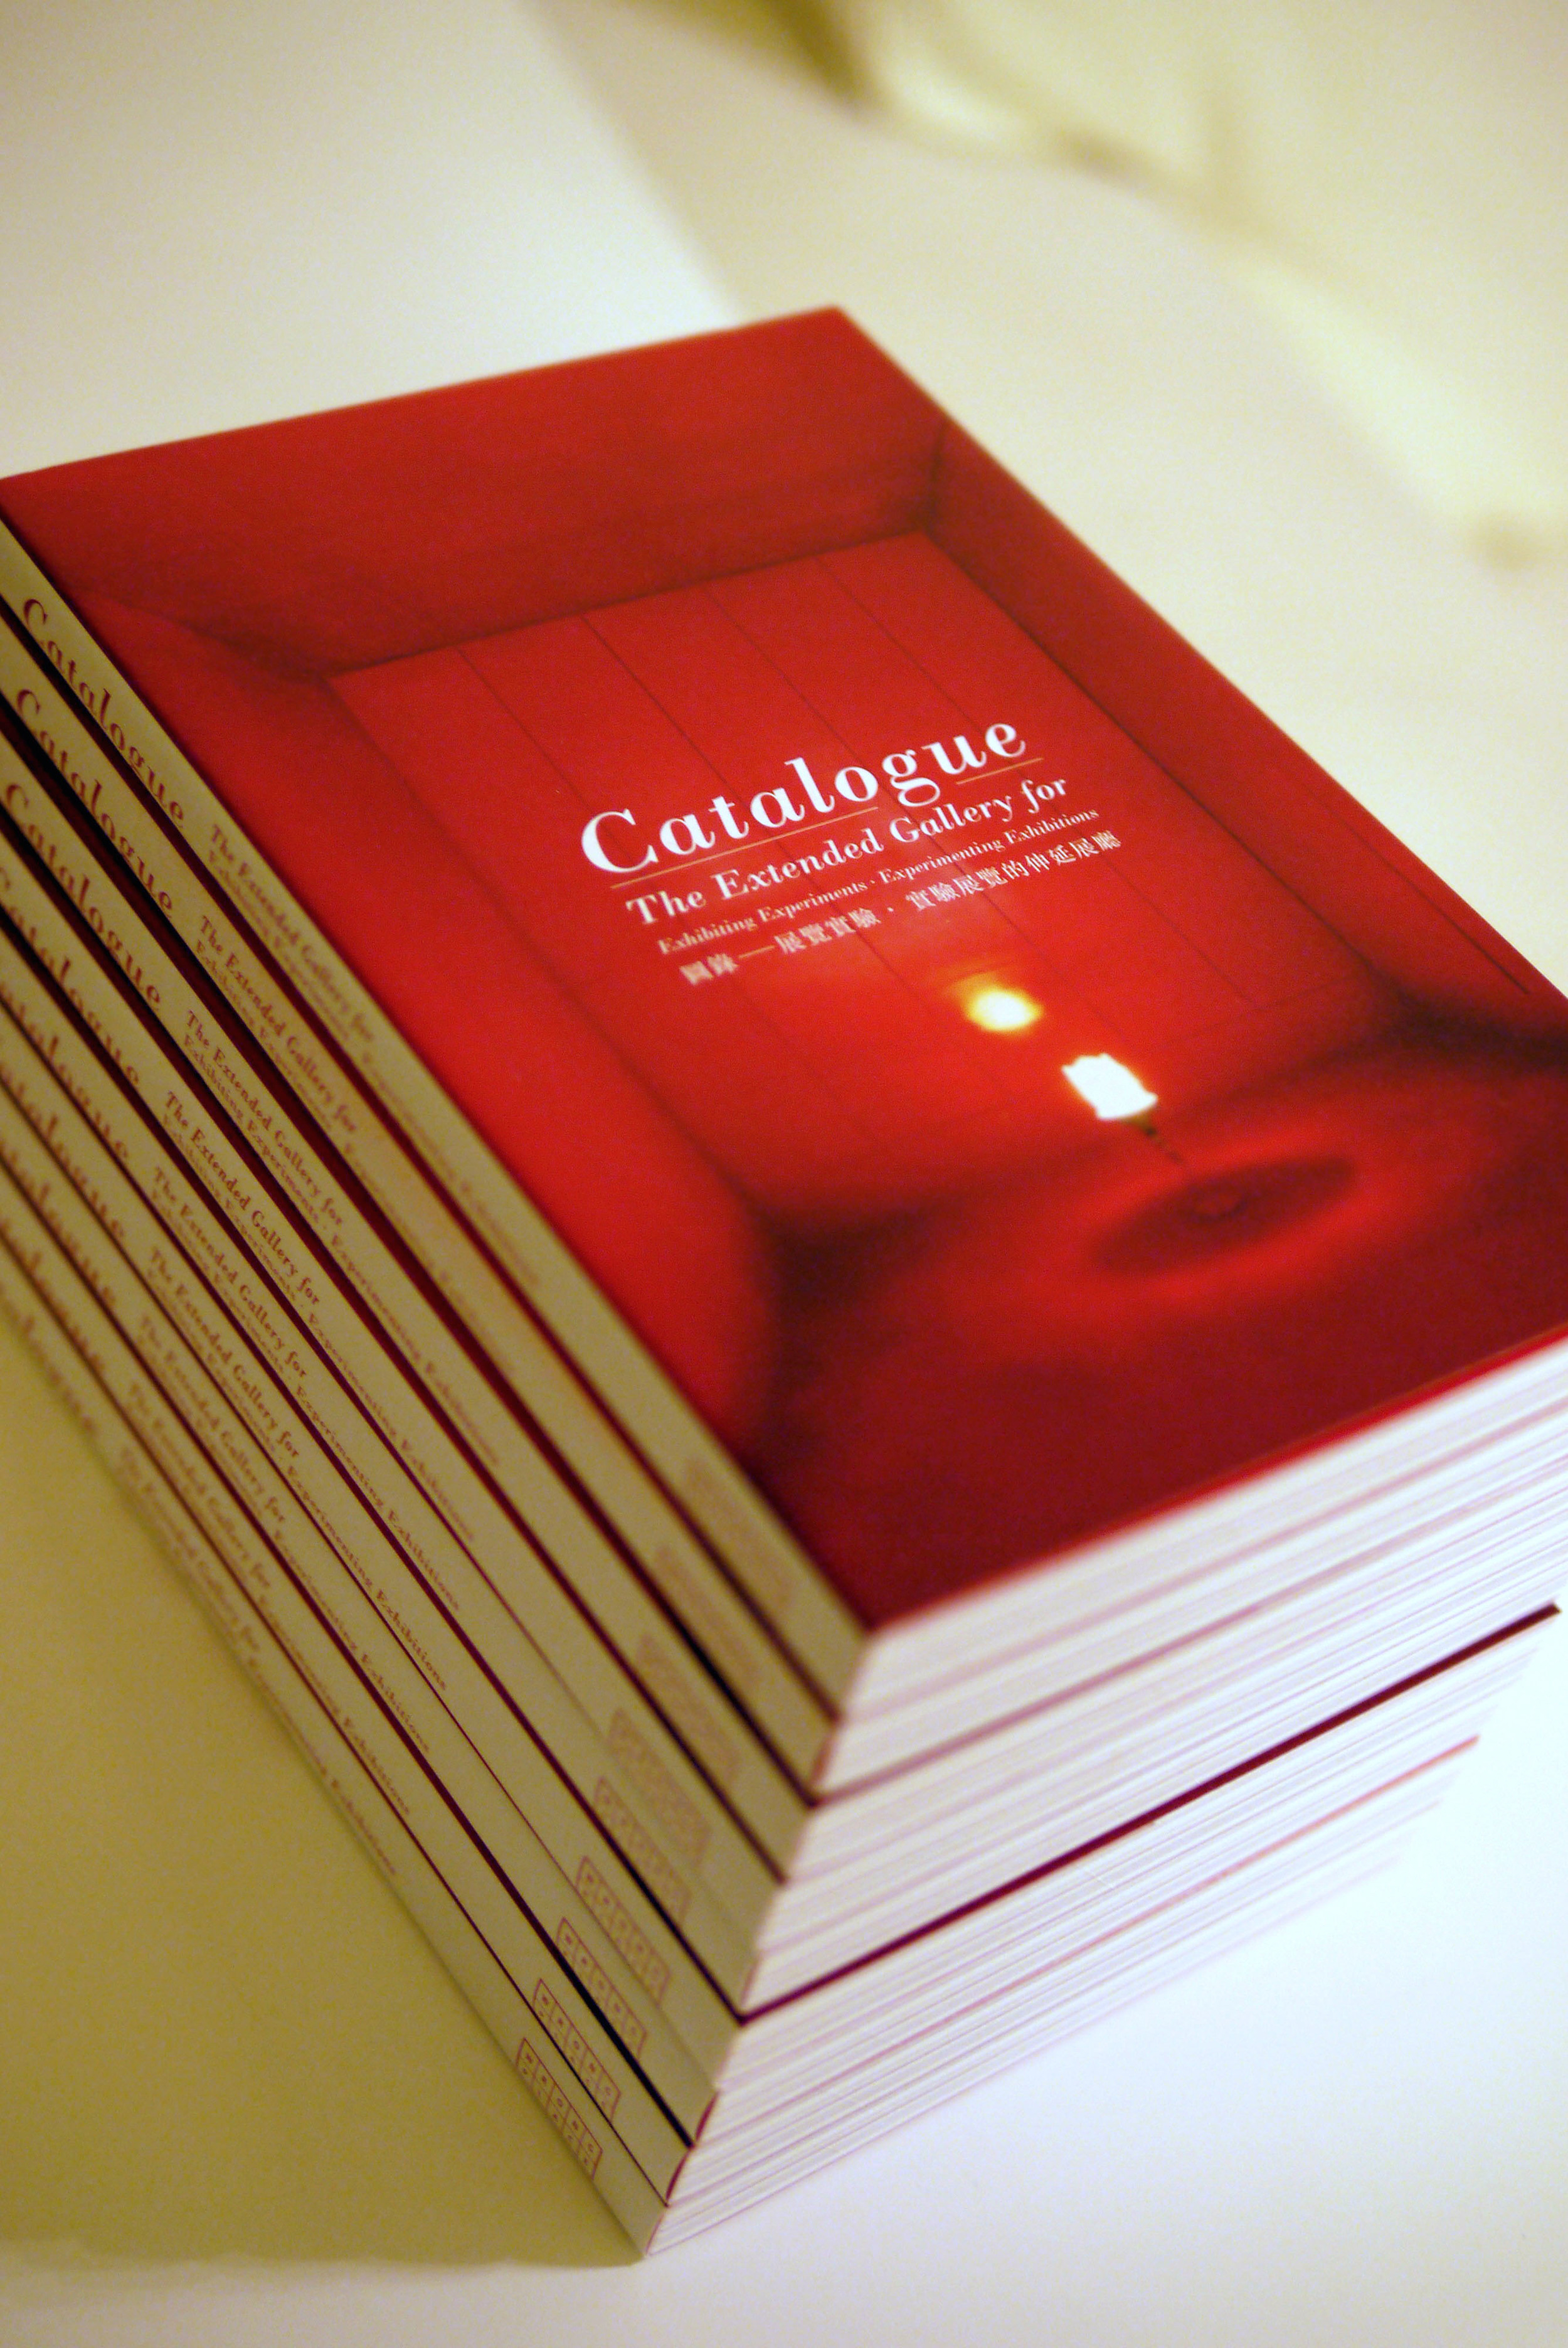 《Catalogue : The Extended Gallery for Exhibiting Experiment. Experimenting Exhibition》